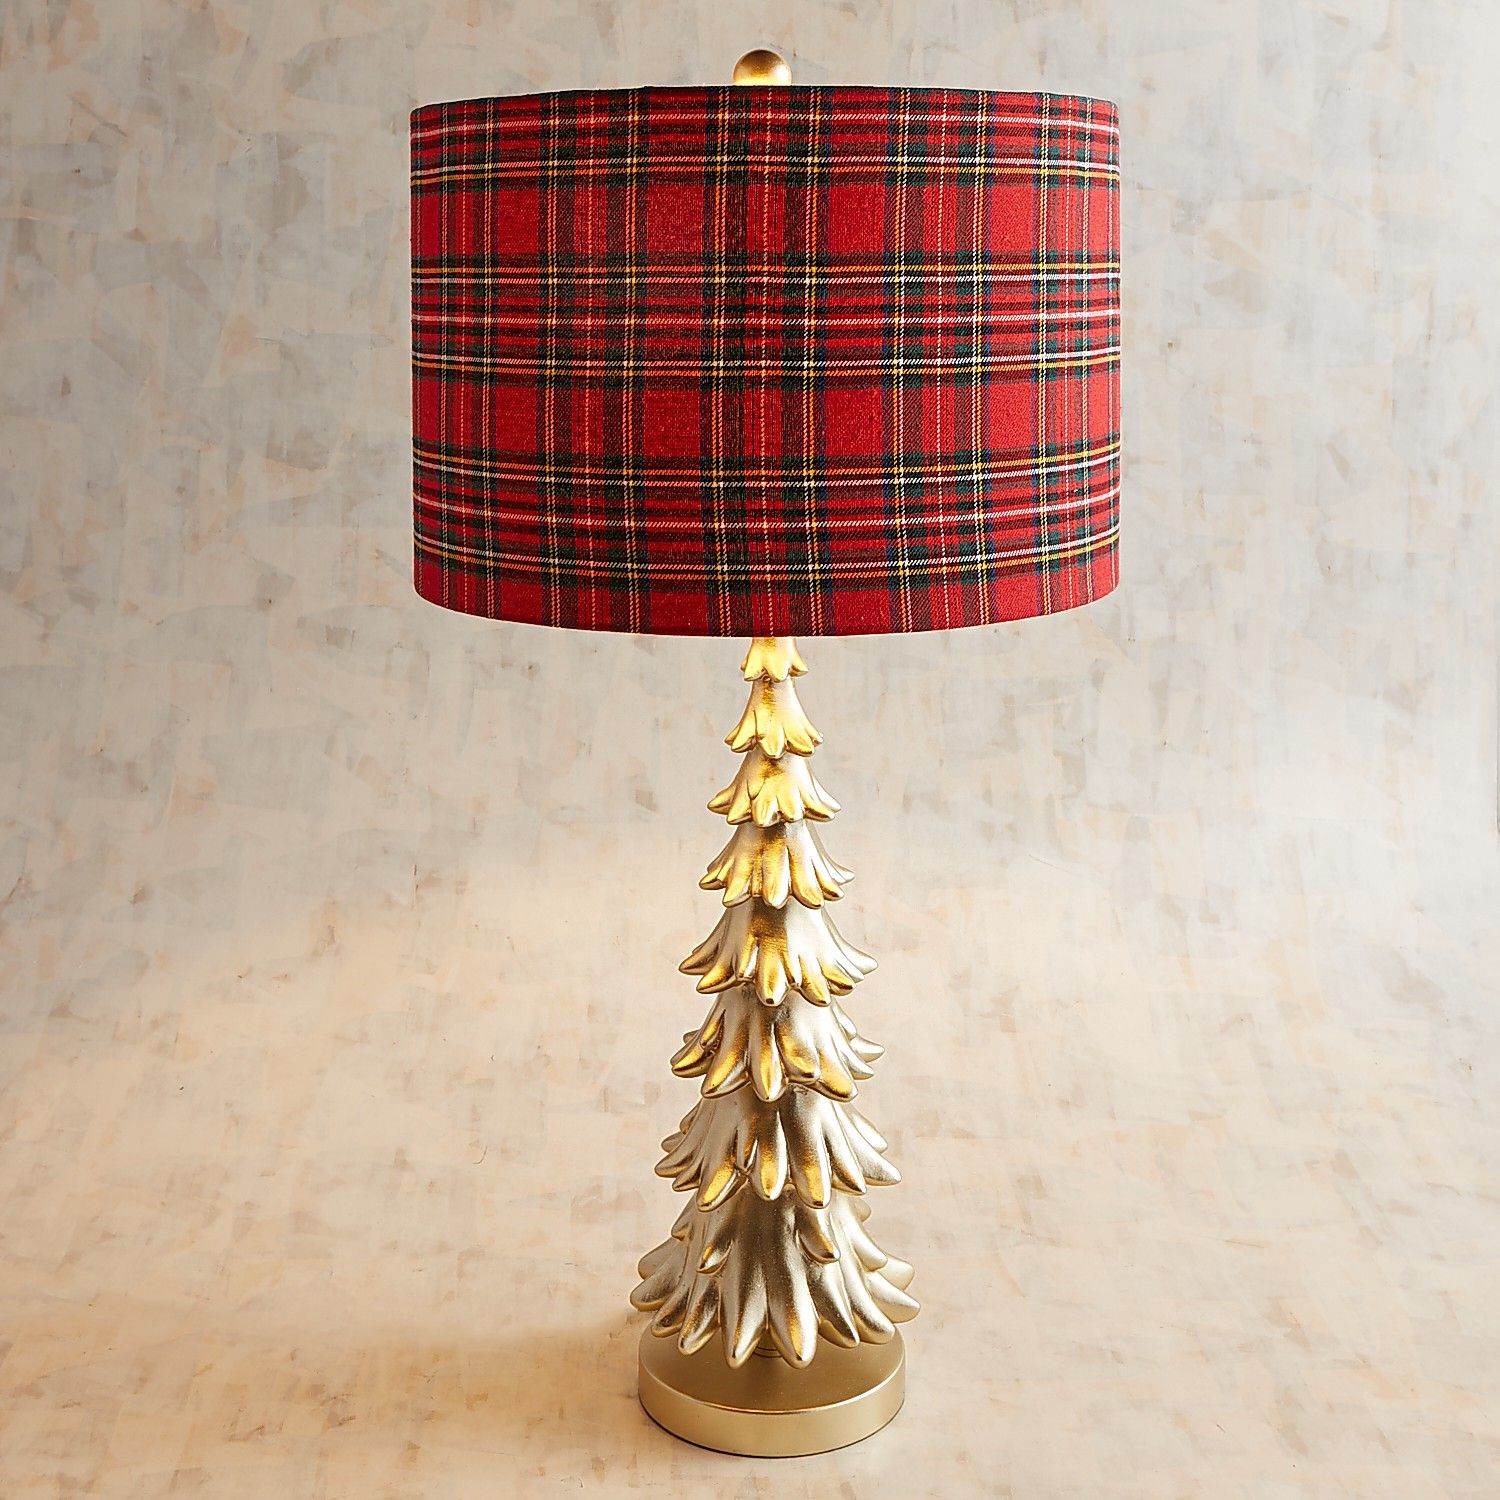 christmas tree table lamp with plaid shade pier imports one accent lamps sisal runner counter height round pub grey and white espresso color coffee cream farm legs insulated ice